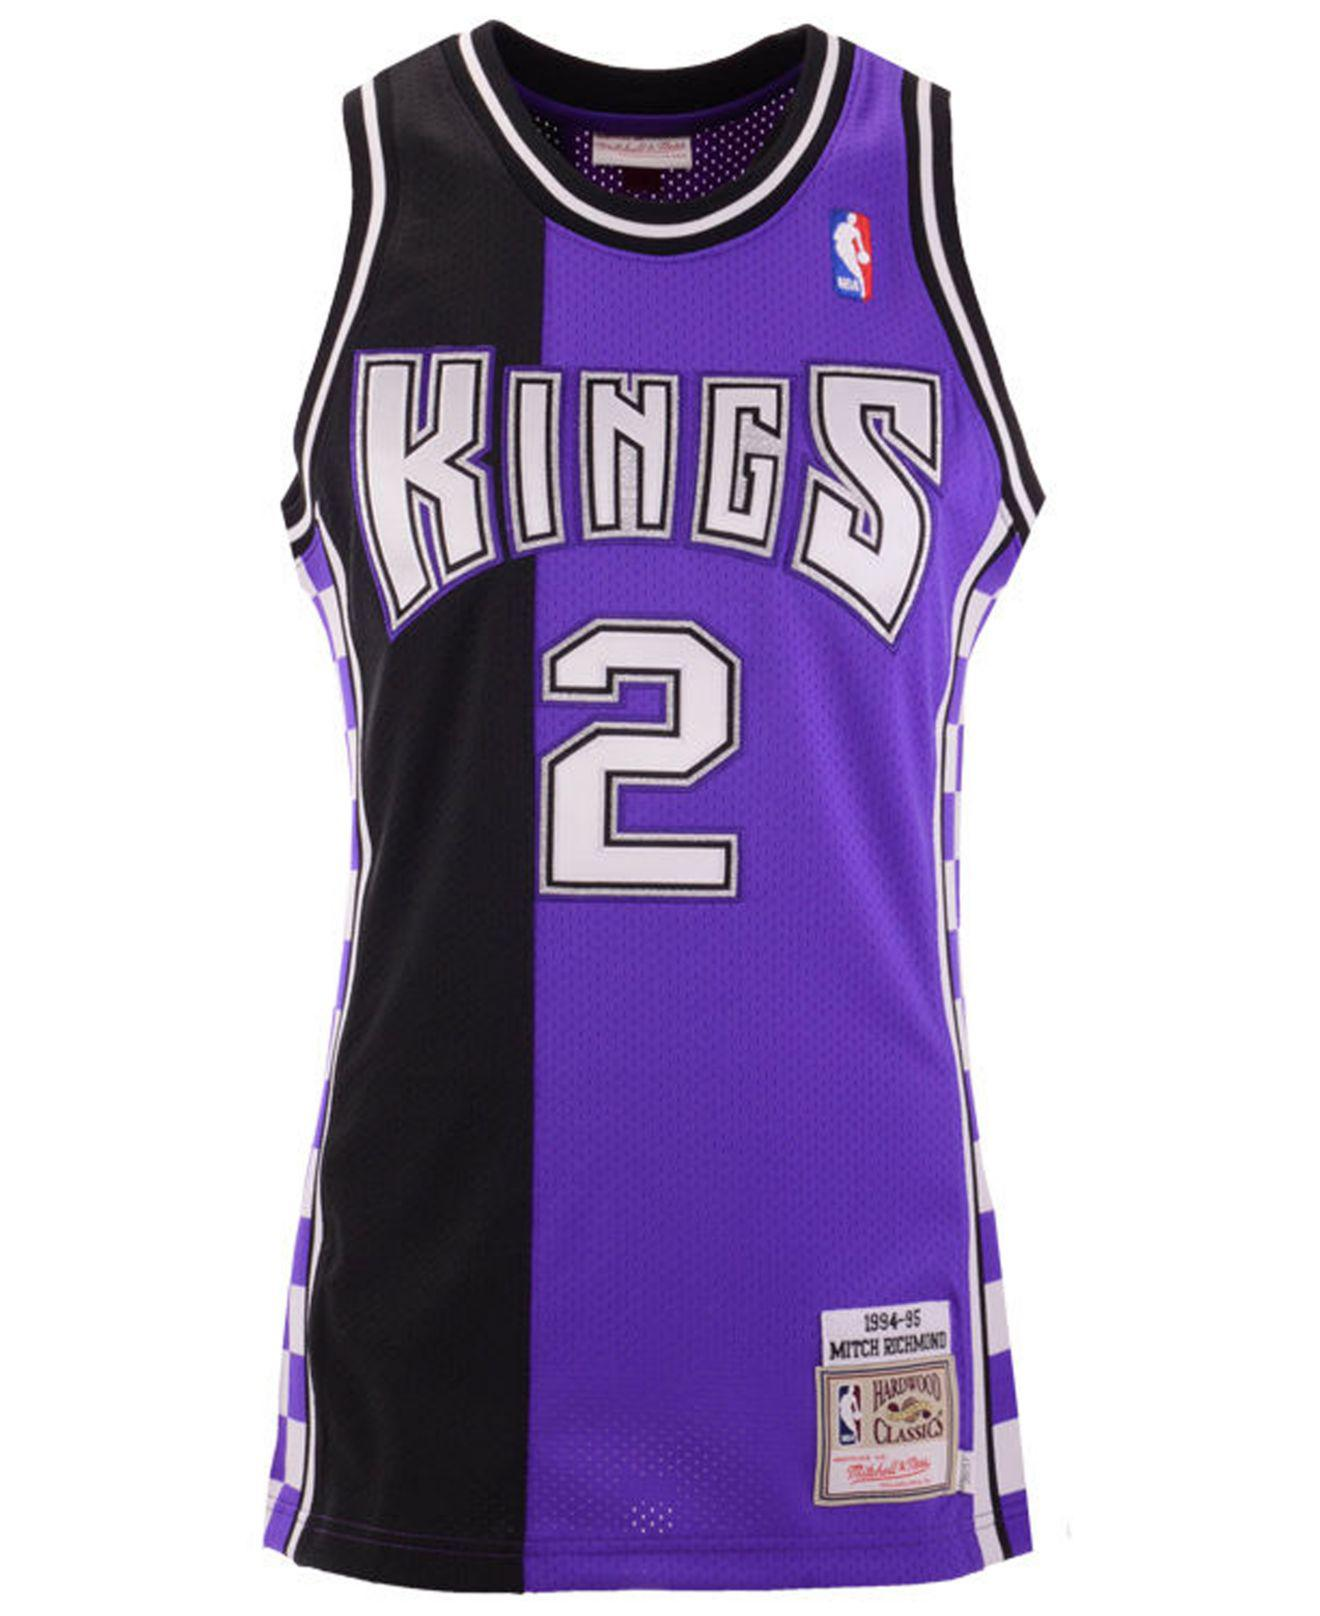 4a422cac6fa Mitchell   Ness Mitch Richmond Sacramento Kings Authentic Jersey in Purple  for Men - Lyst